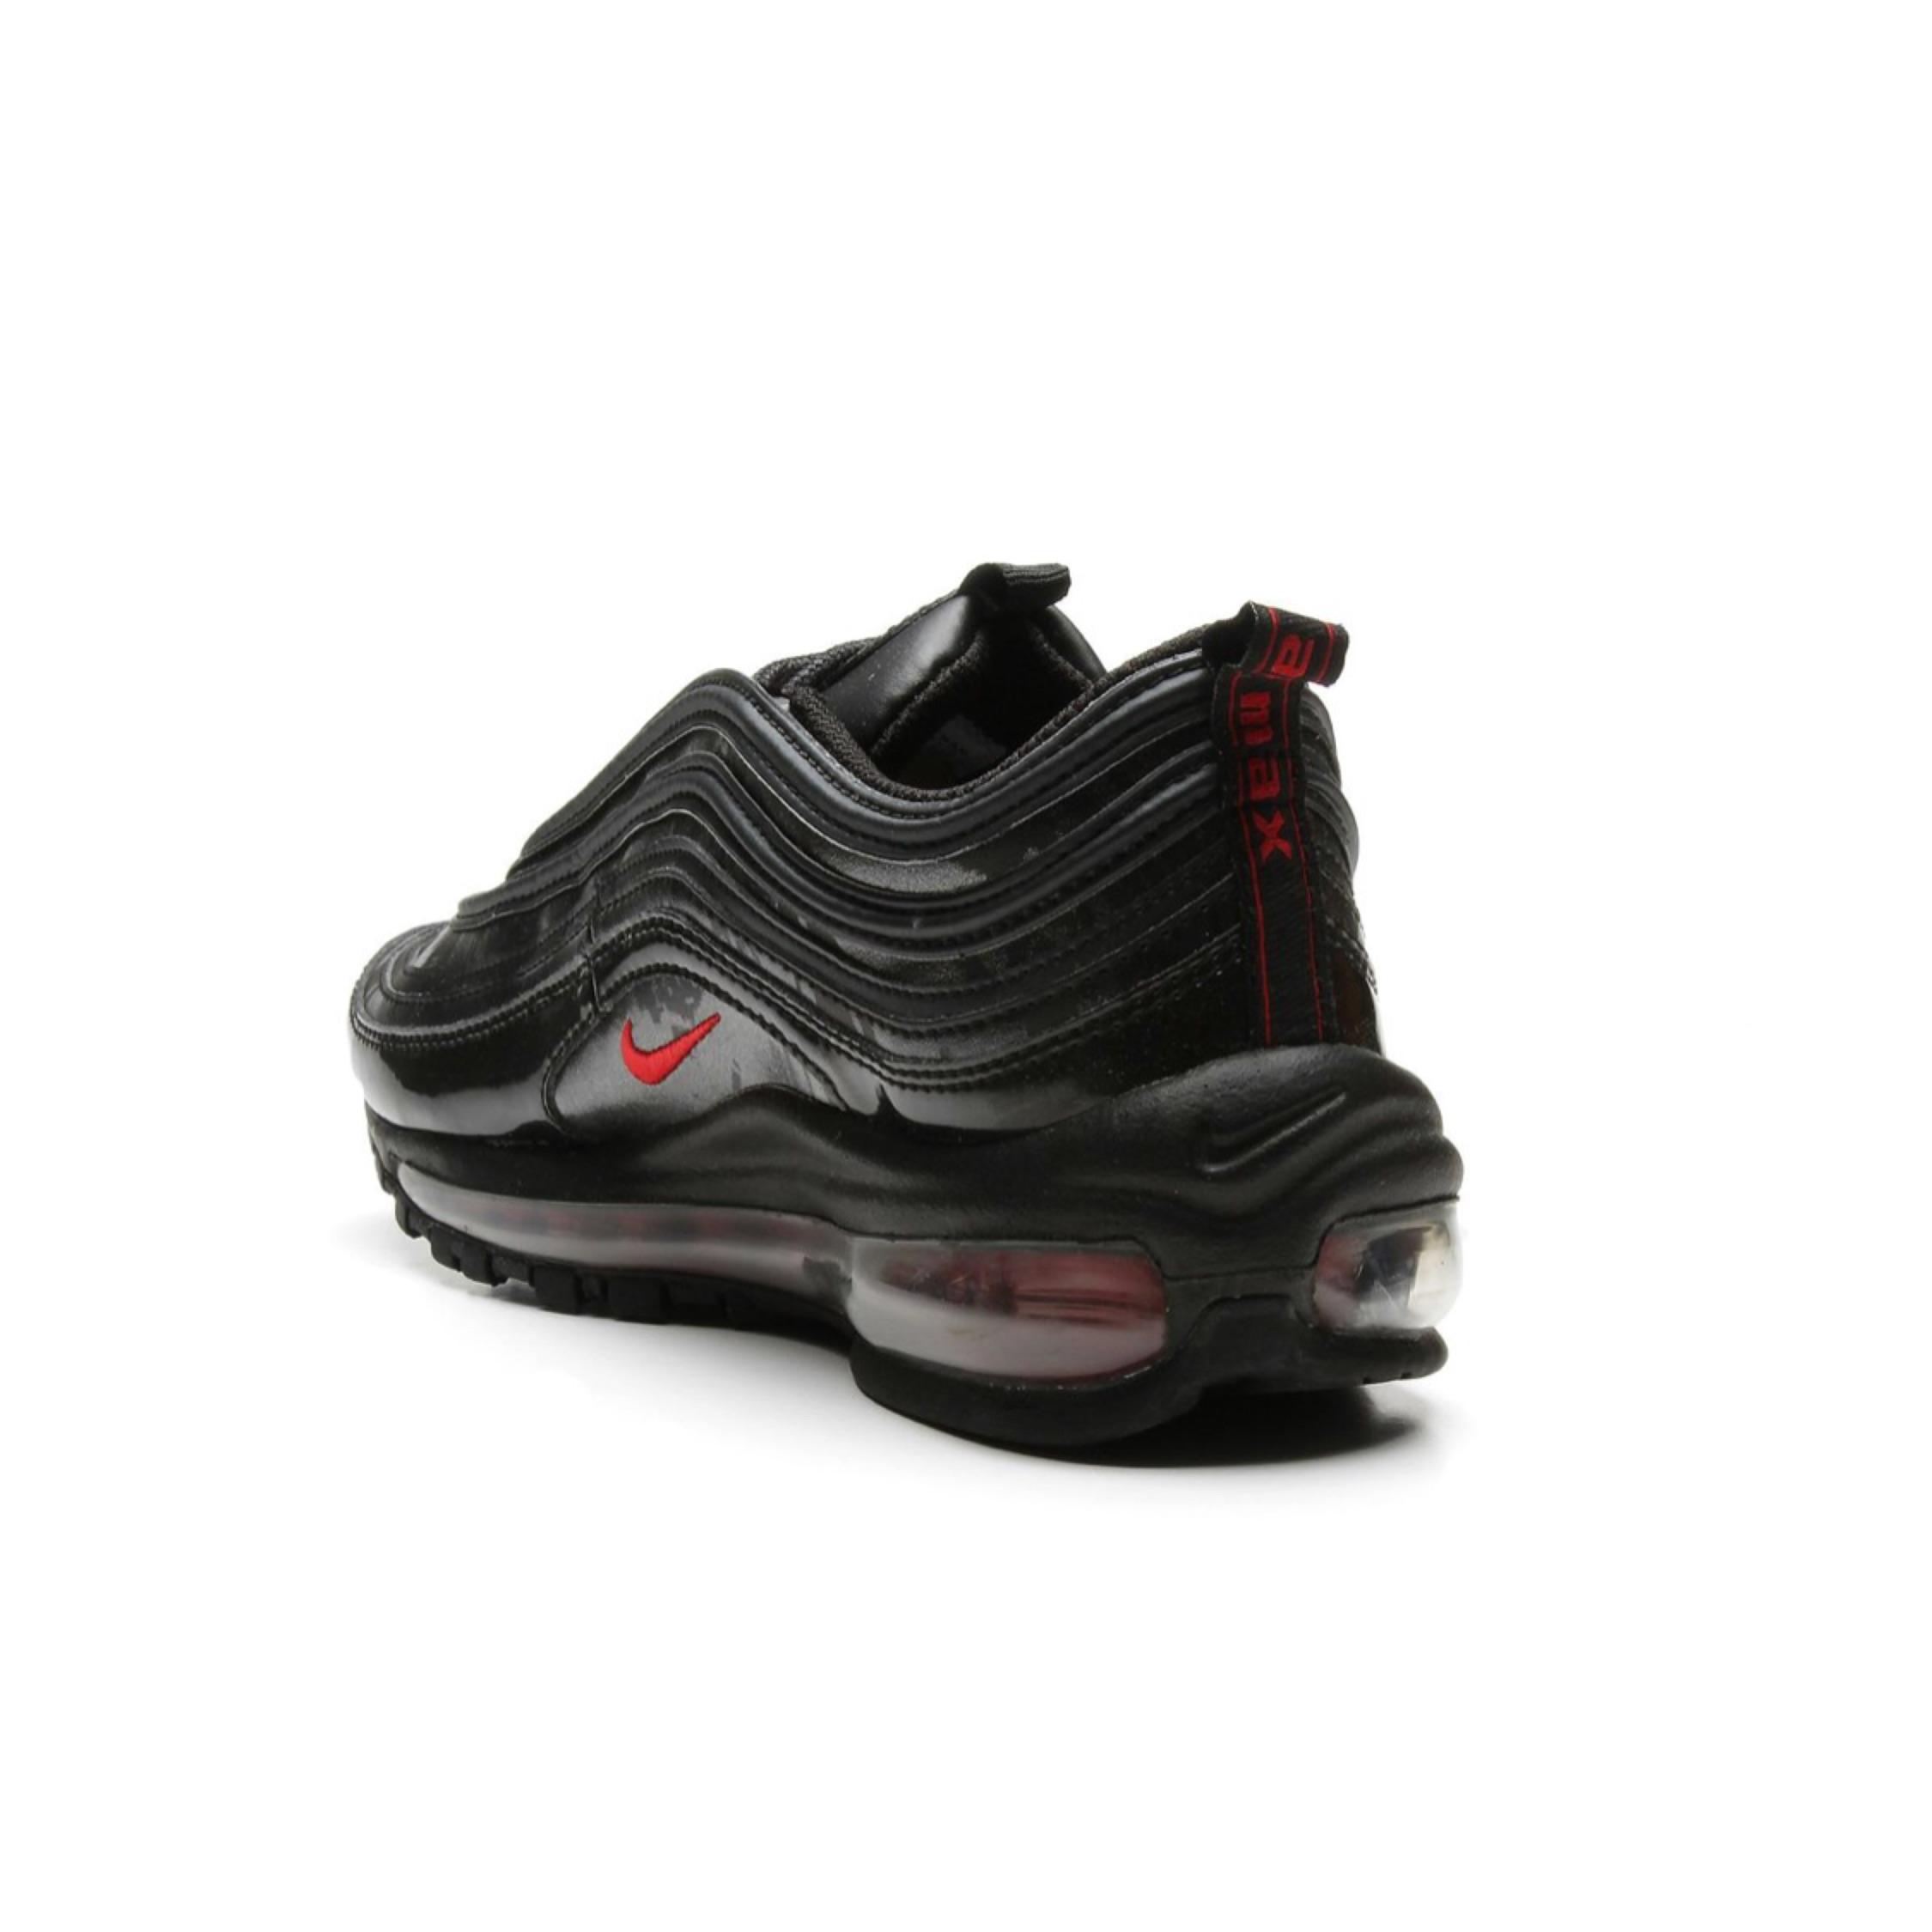 timeless design aae55 b7927 Nike Air Max 97 Black And Red Eu38